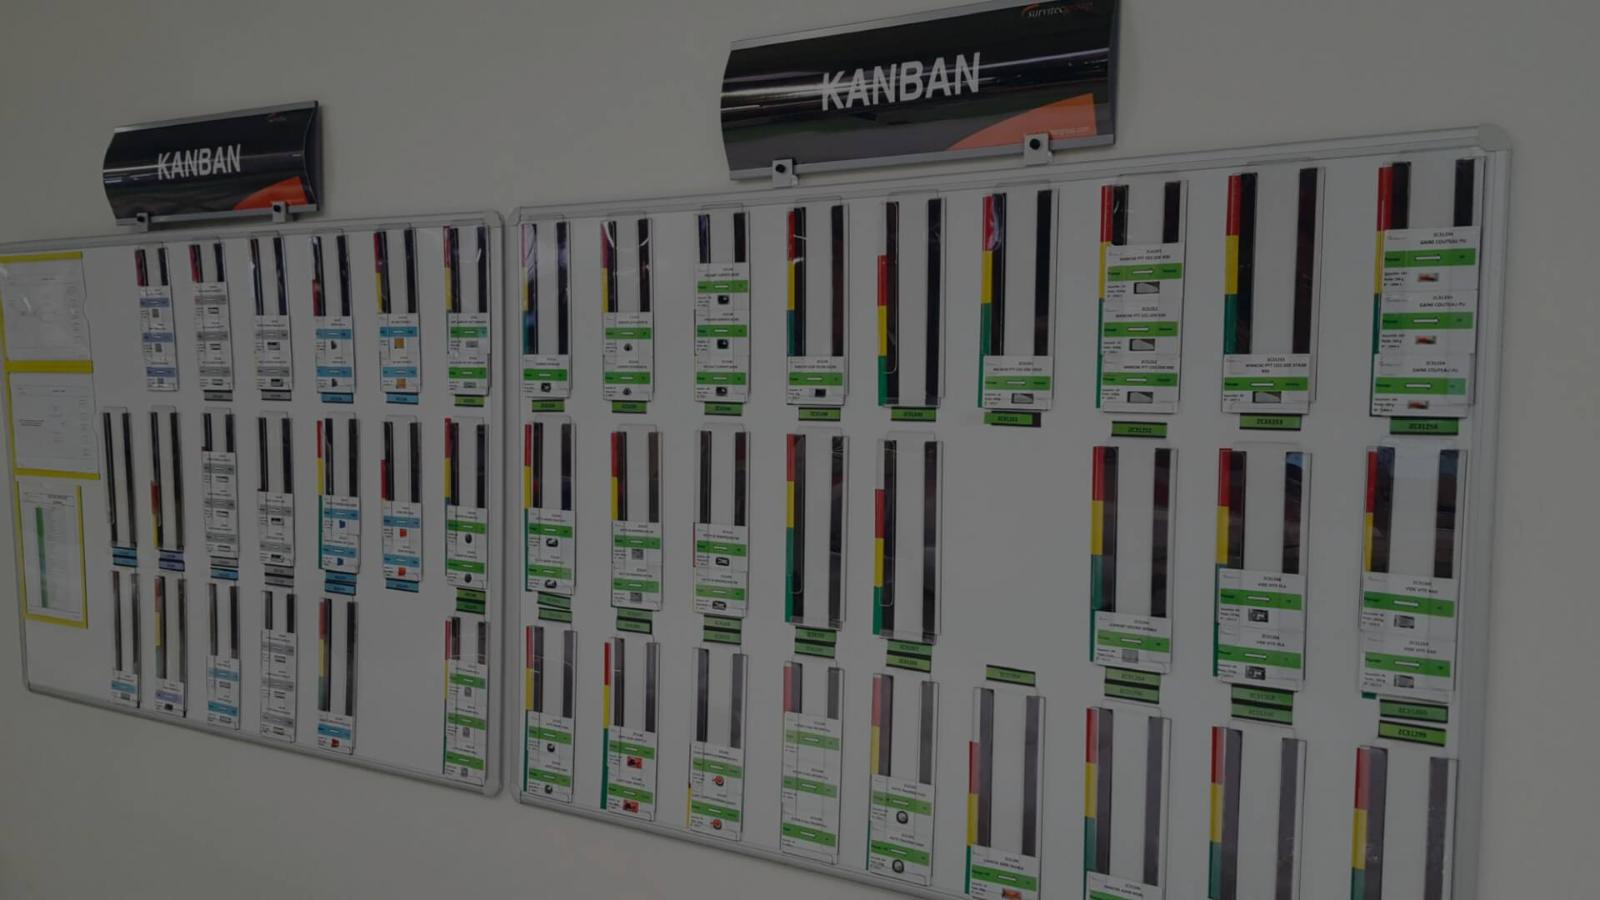 Whiteboard with Kanban card